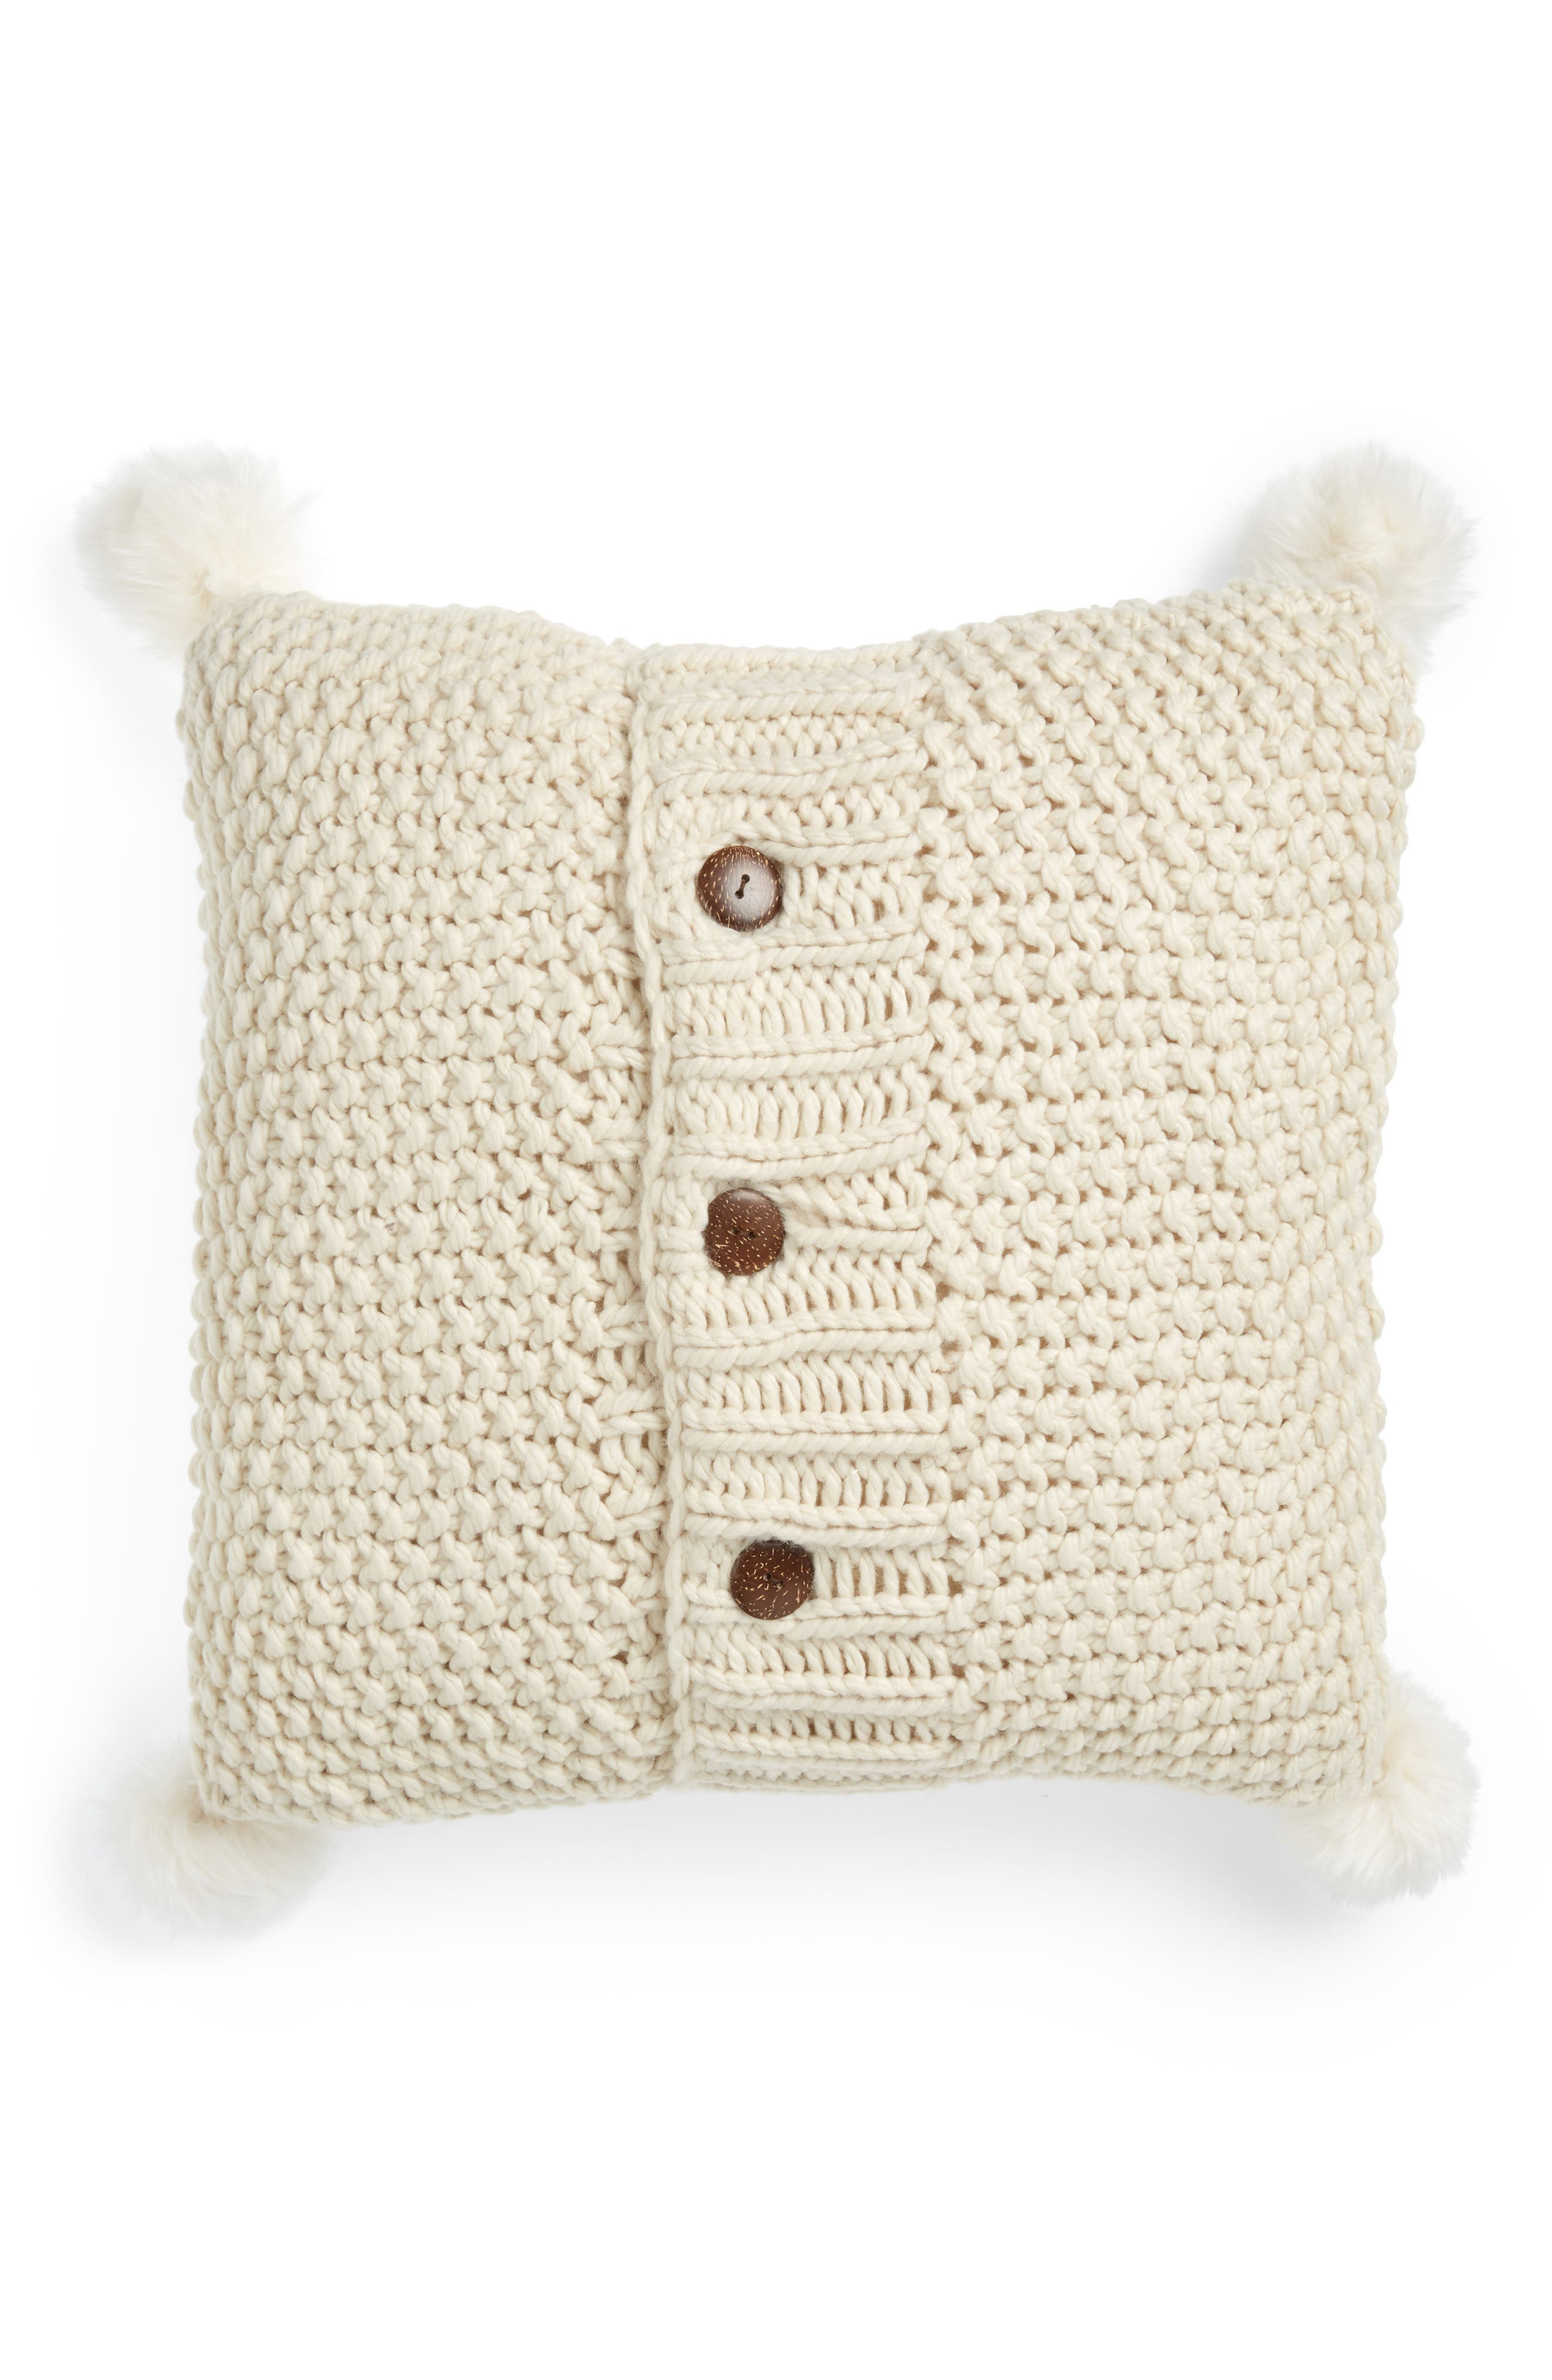 Knit Accent Pillow with Faux Fur Poms,                             Main thumbnail 1, color,                             IVORY